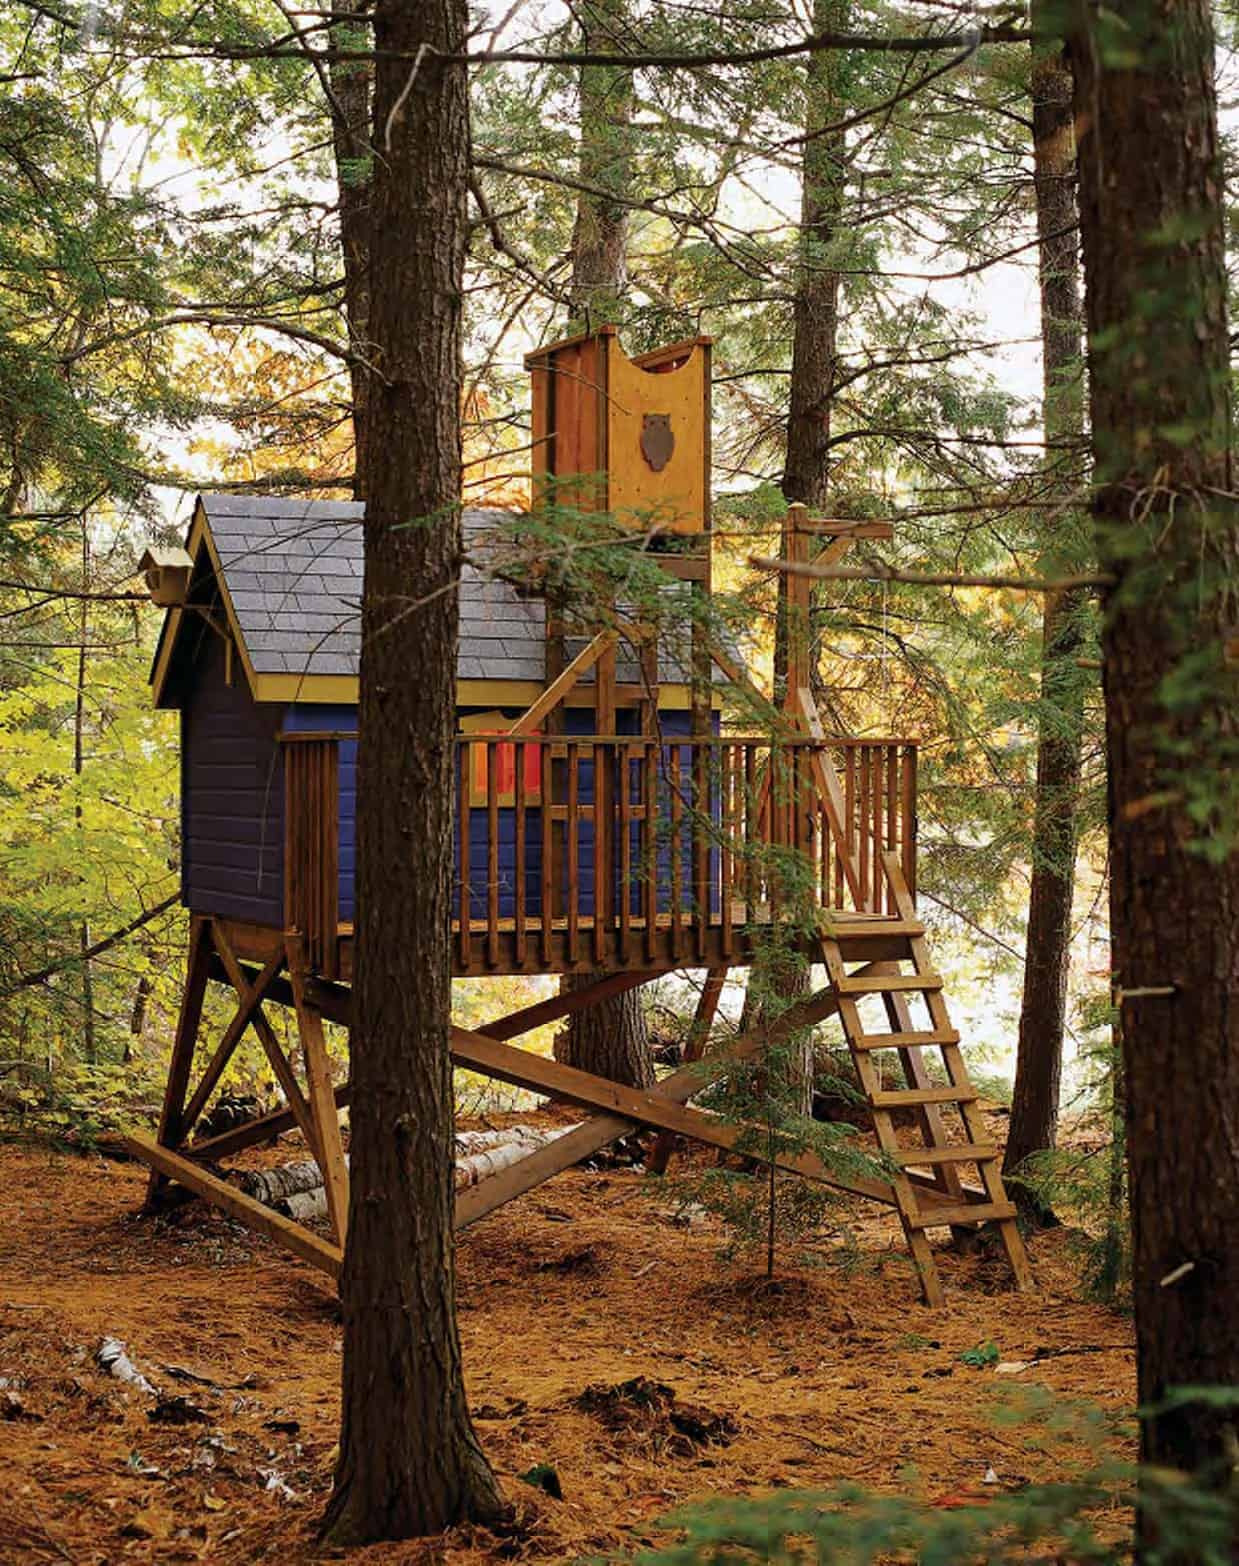 Tree House Swing Set Plans Lovely How to Build A Treehouse for Your Backyard